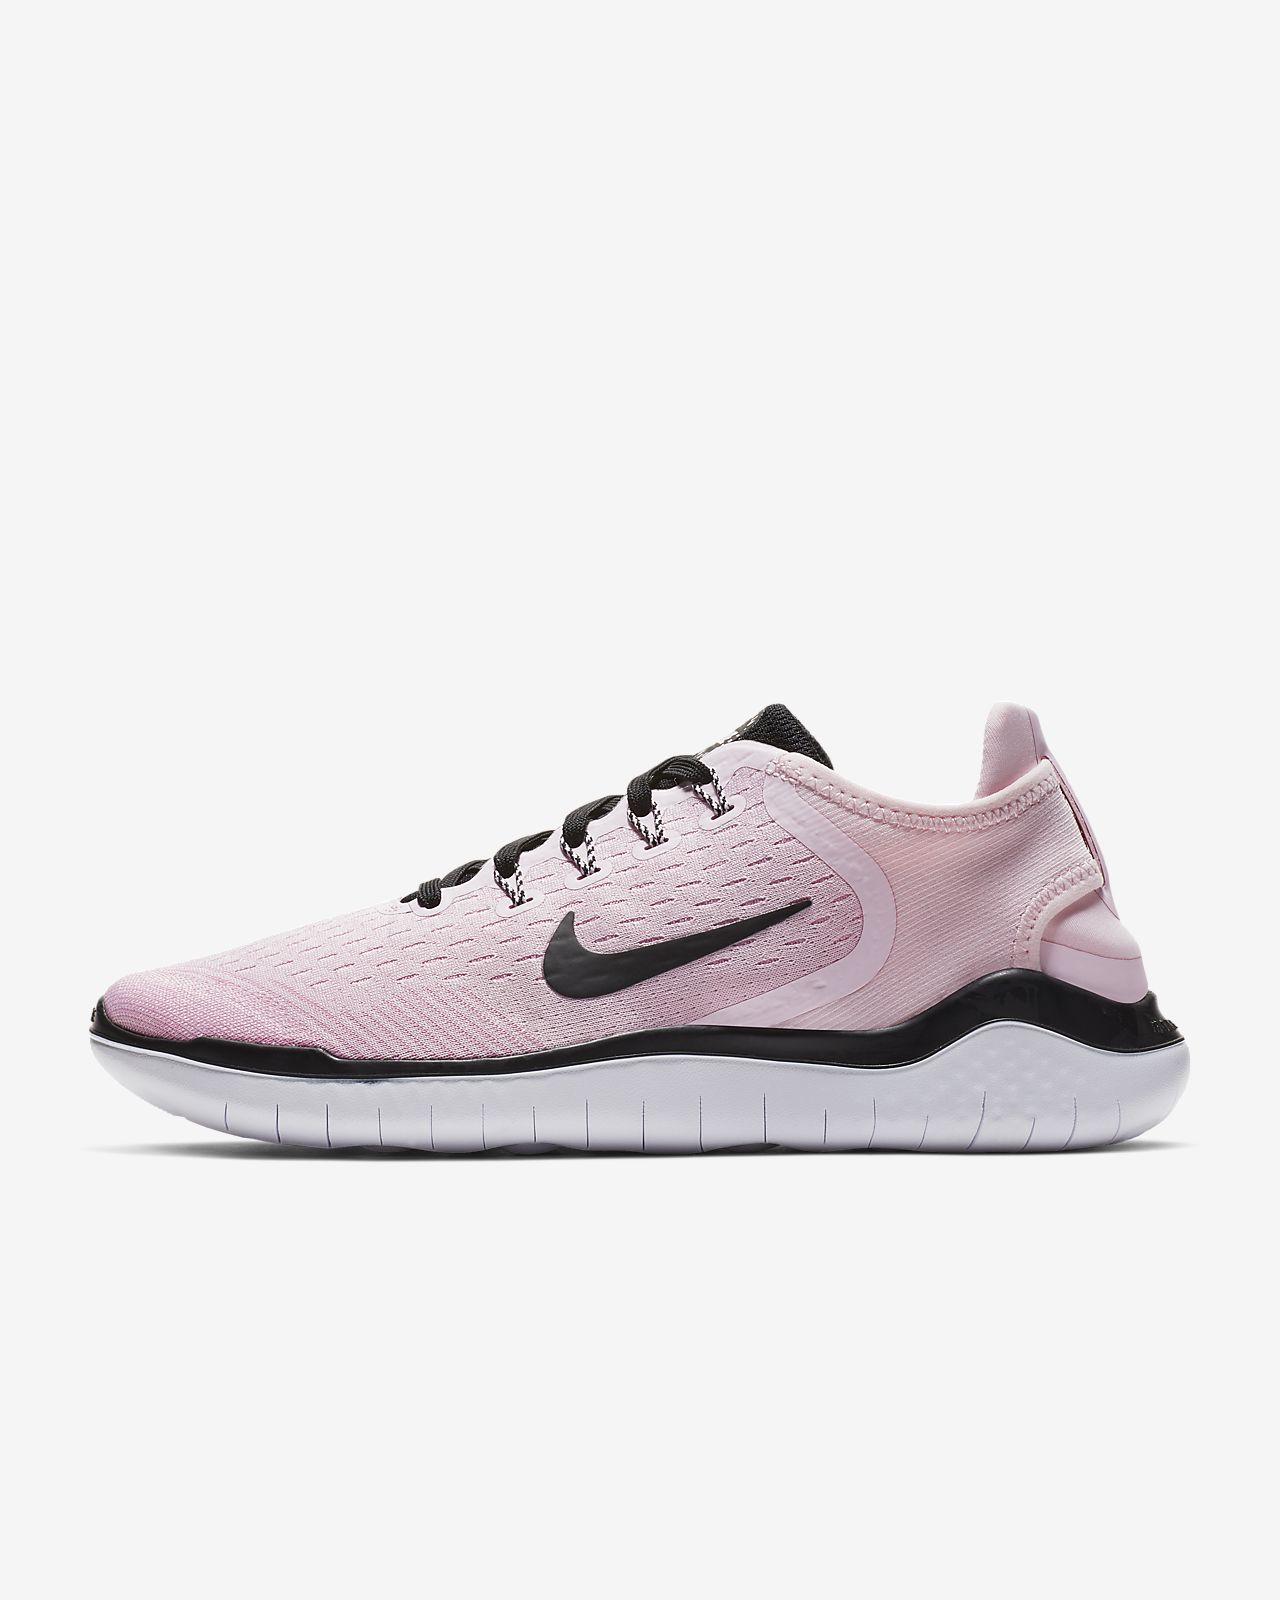 Femme Pour Be Free 2018 De Running Chaussure Rn Nike vY108Ux